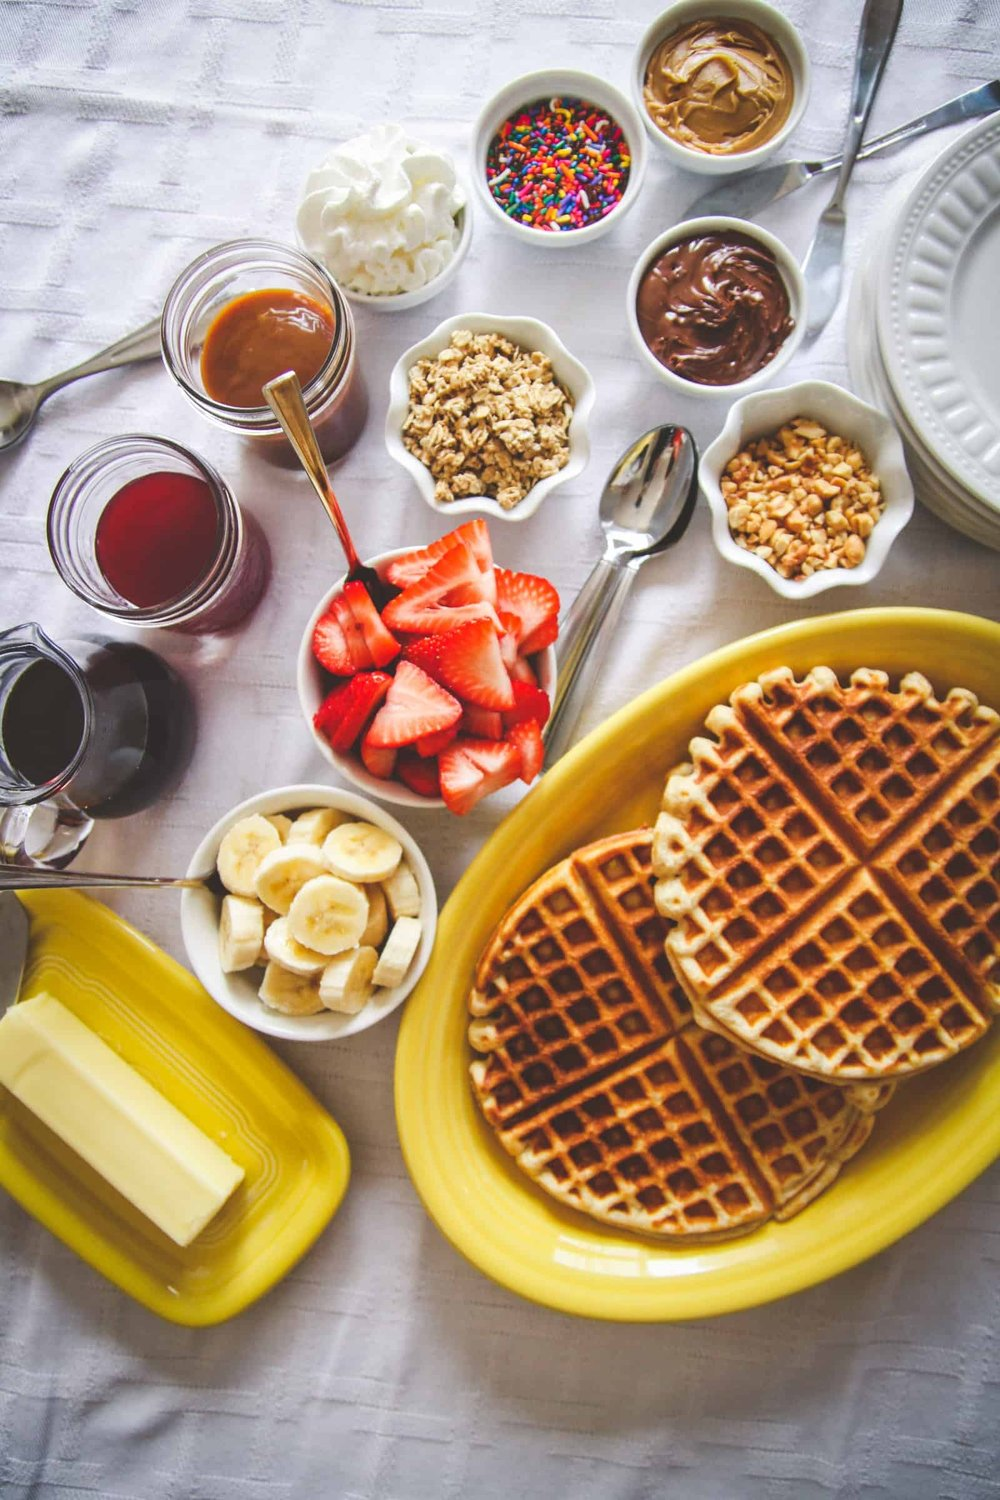 Blissful Breakfasts! - Check out these various waffle recipes.